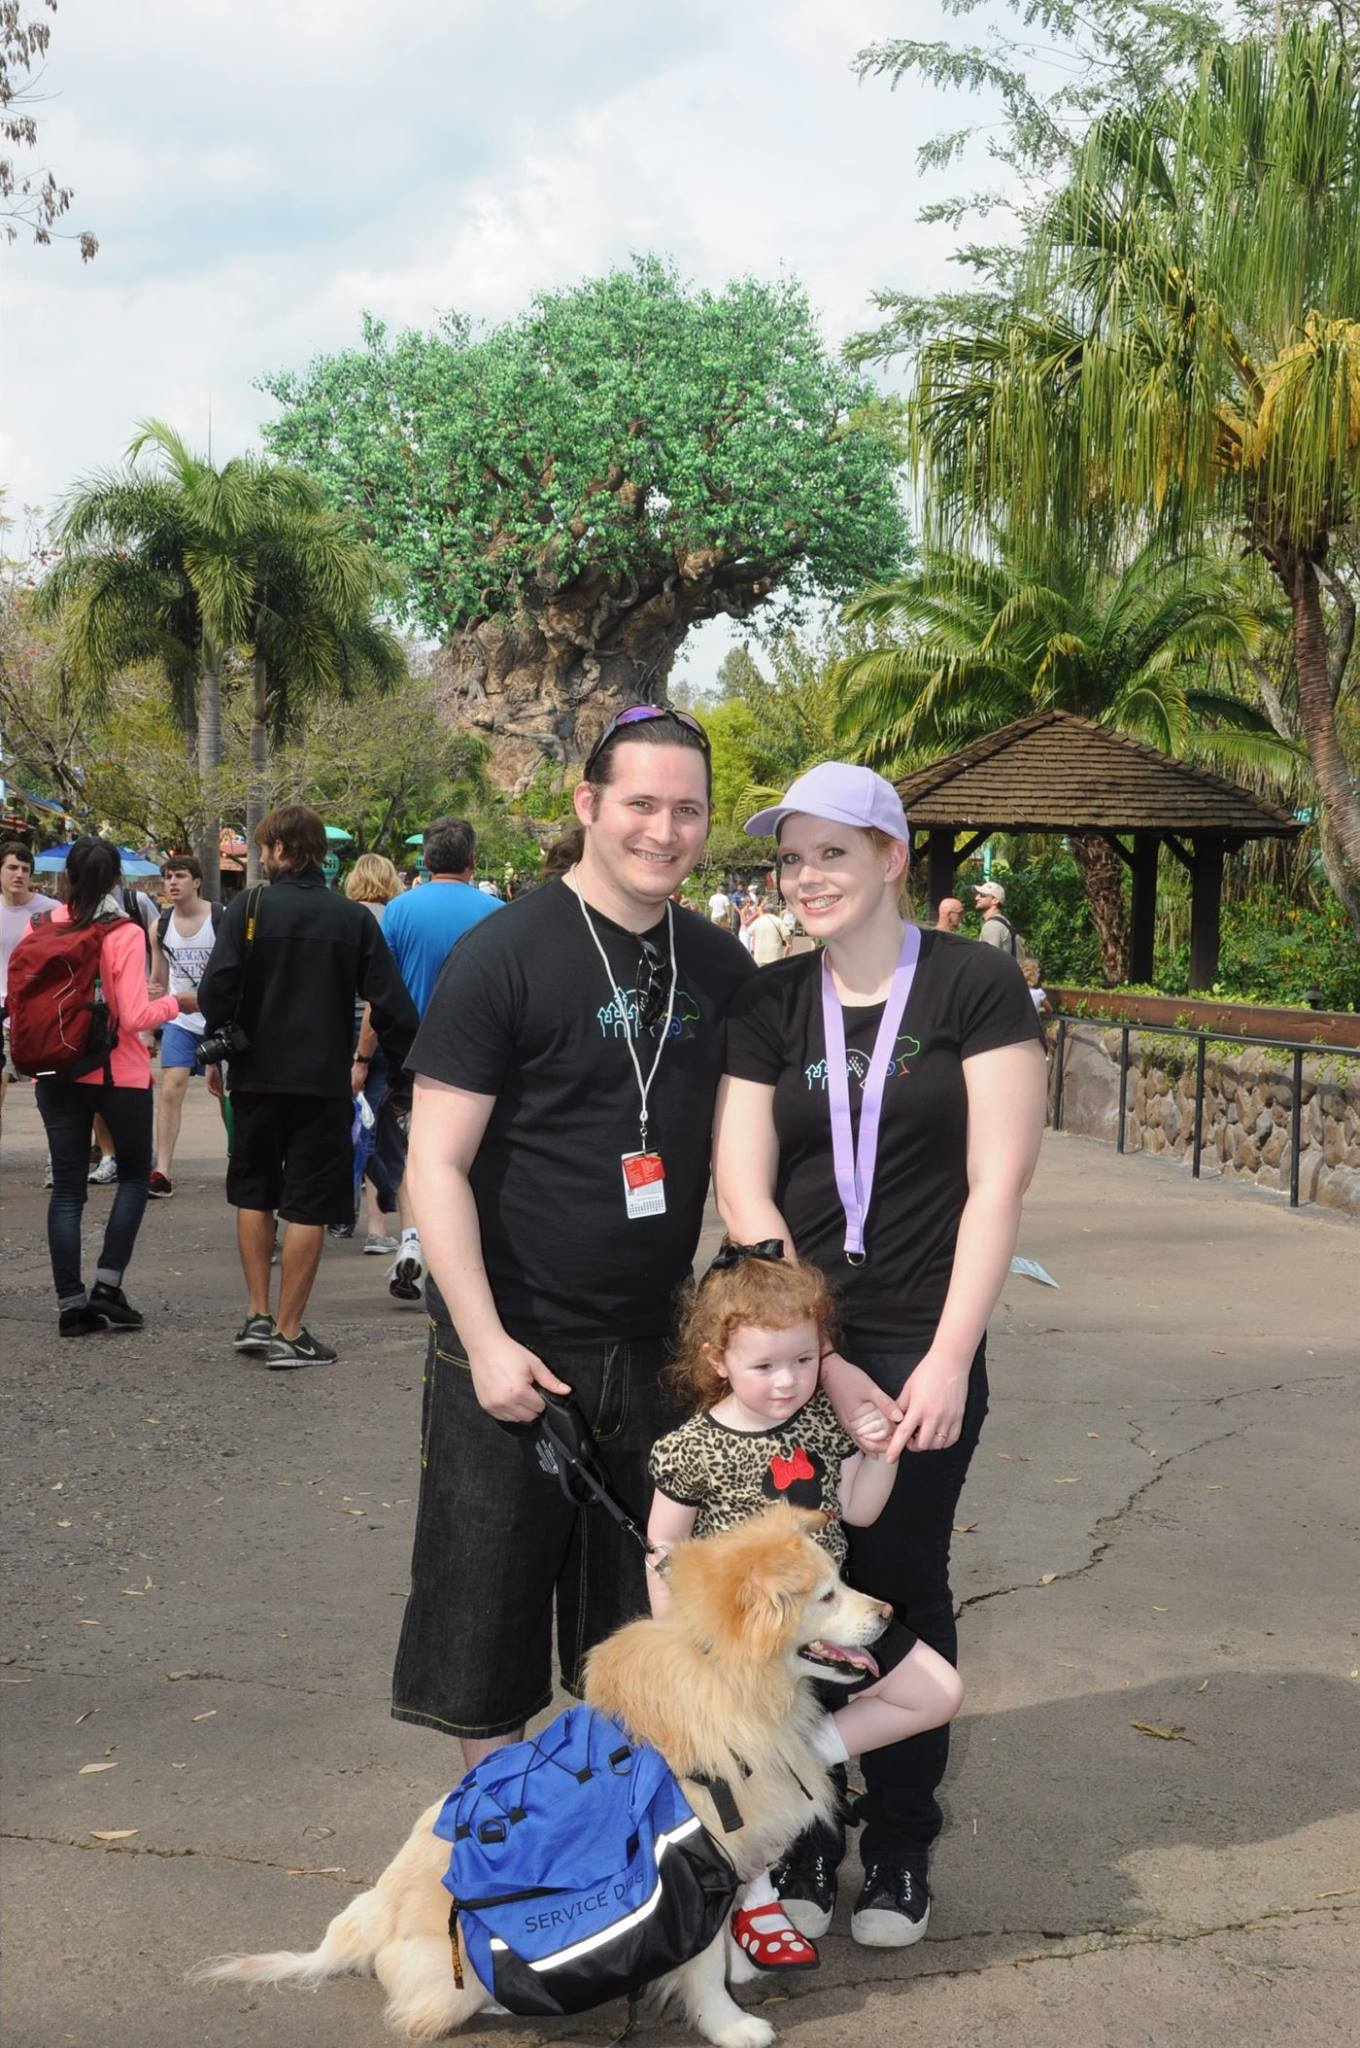 Disney with Special Needs: Traveling with a Service Dog